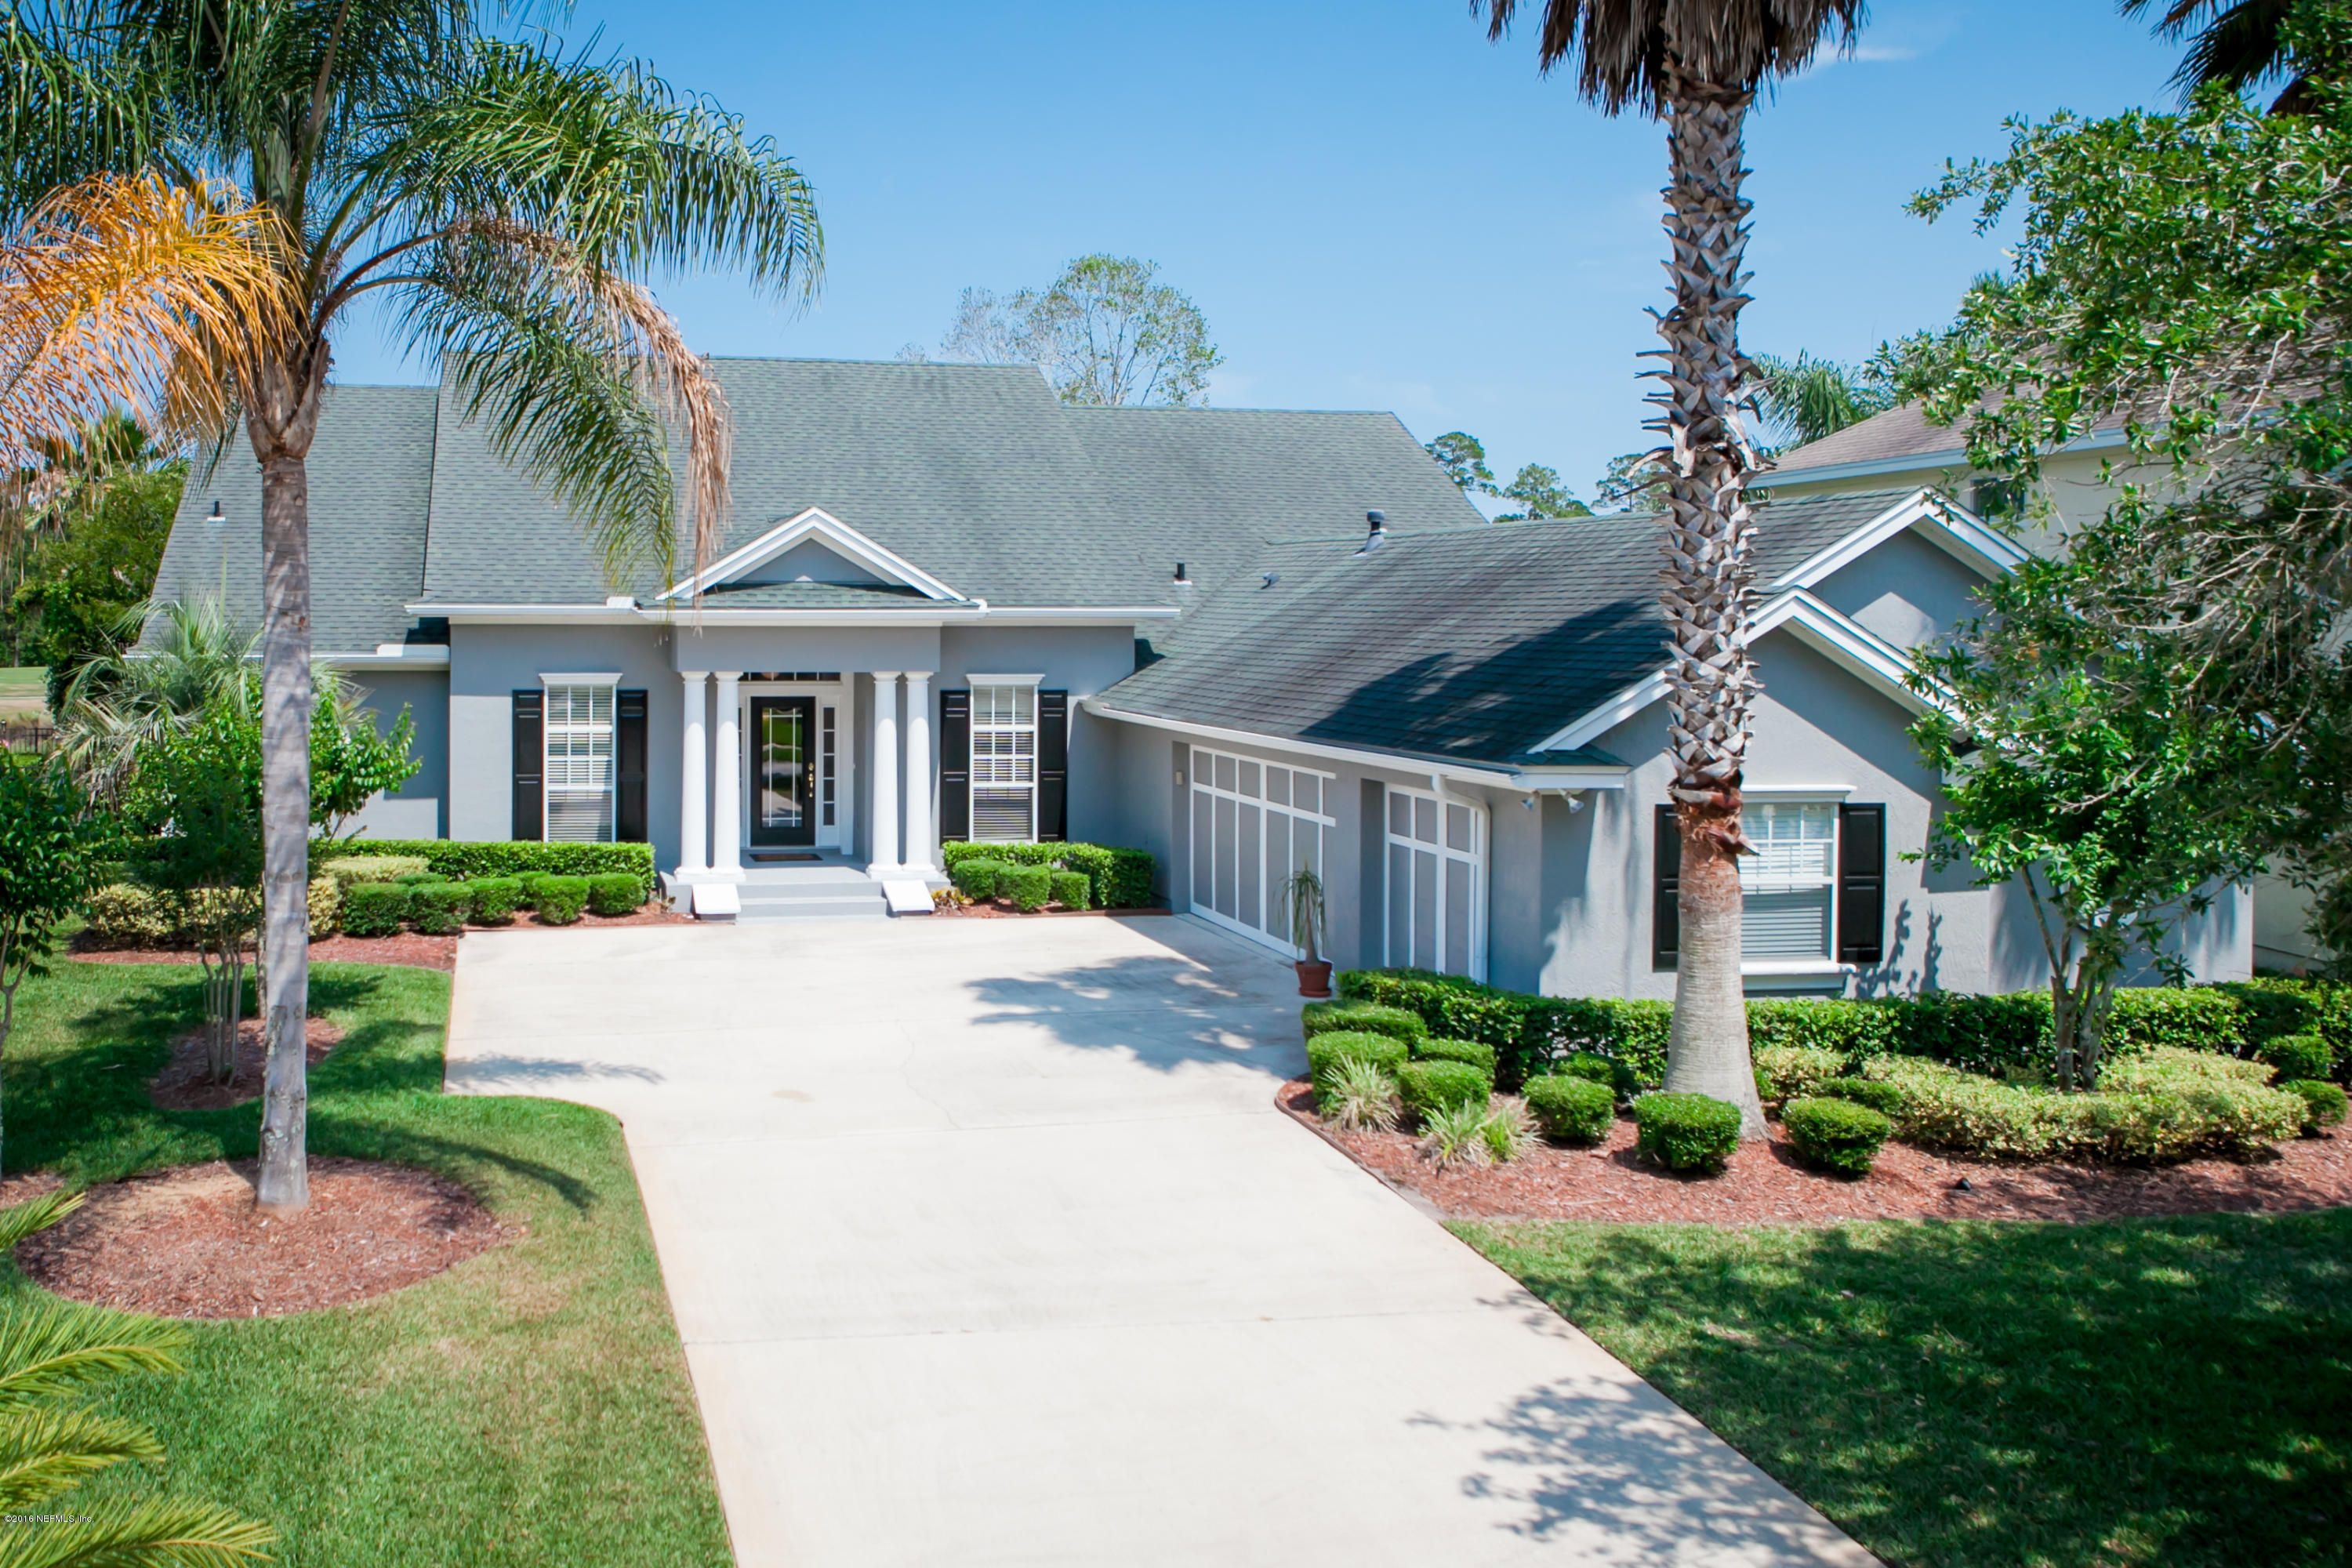 For Sale 324 Saint Johns Golf Dr St Augustine Fl 32092 Contact Lisa Menton For Additional Information 904 923 0678 With Images St Augustine Saint Johns Menton